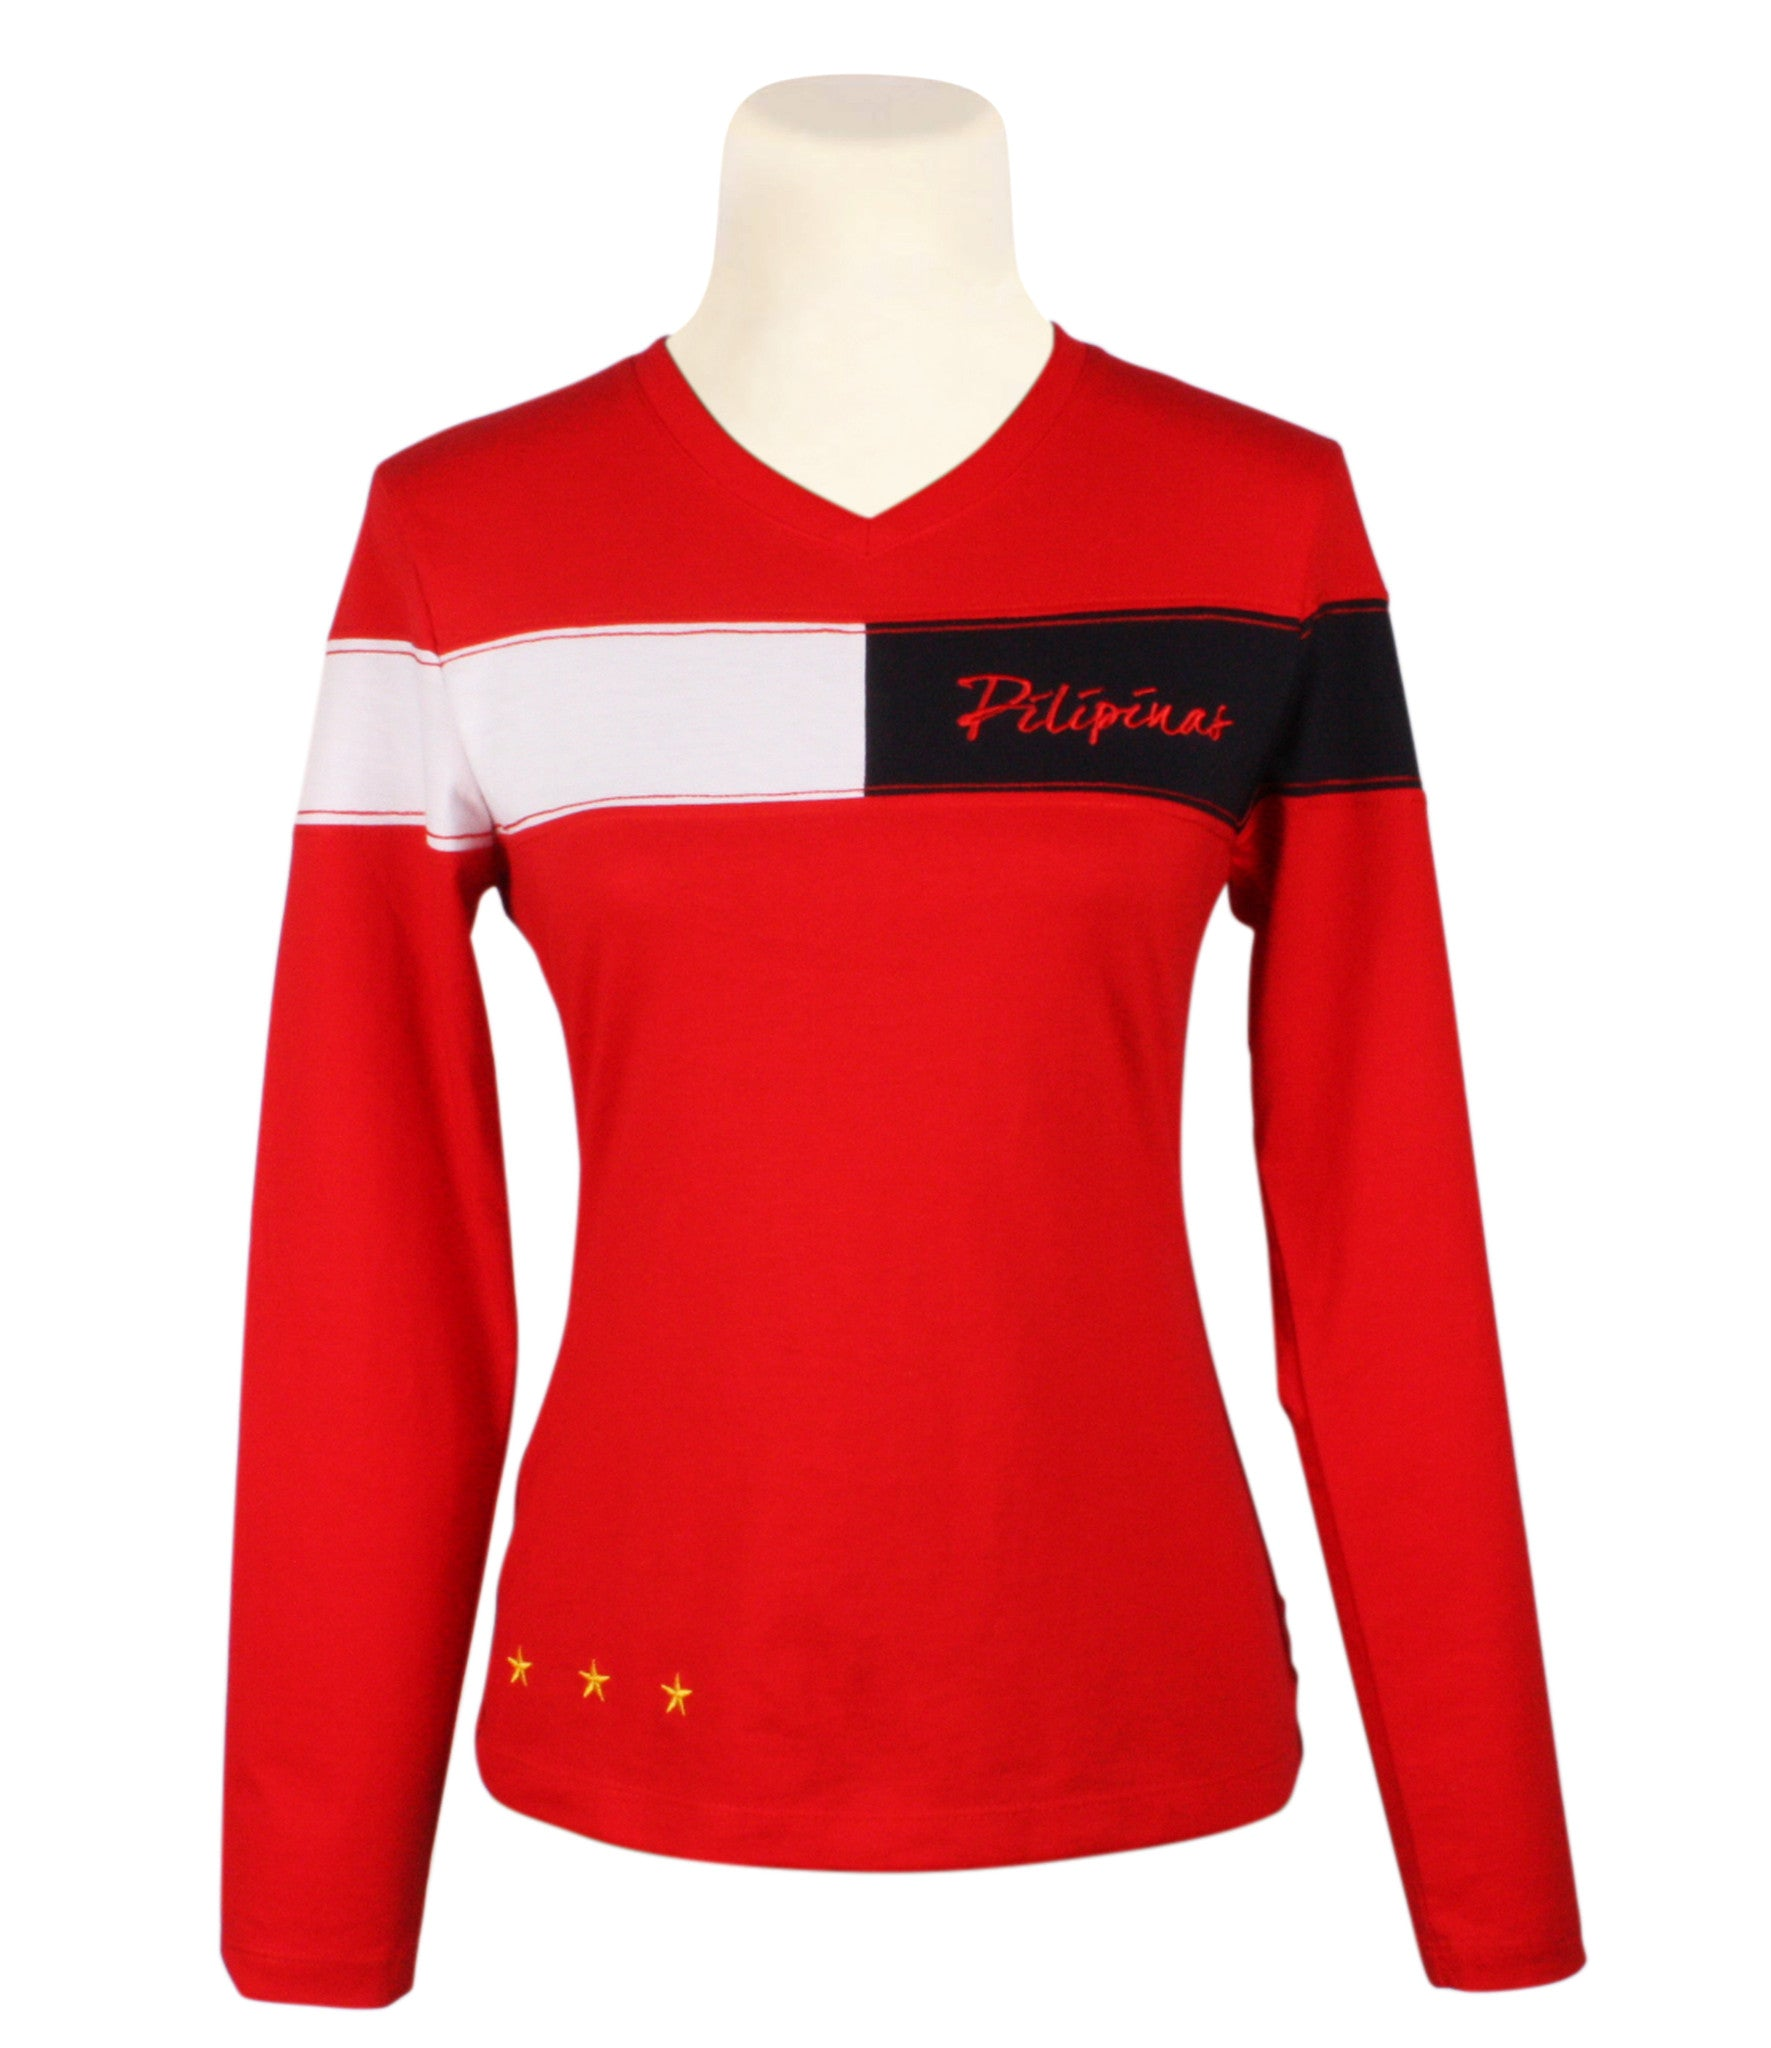 Pilipinas Chain sweatshirt in red for Ladies